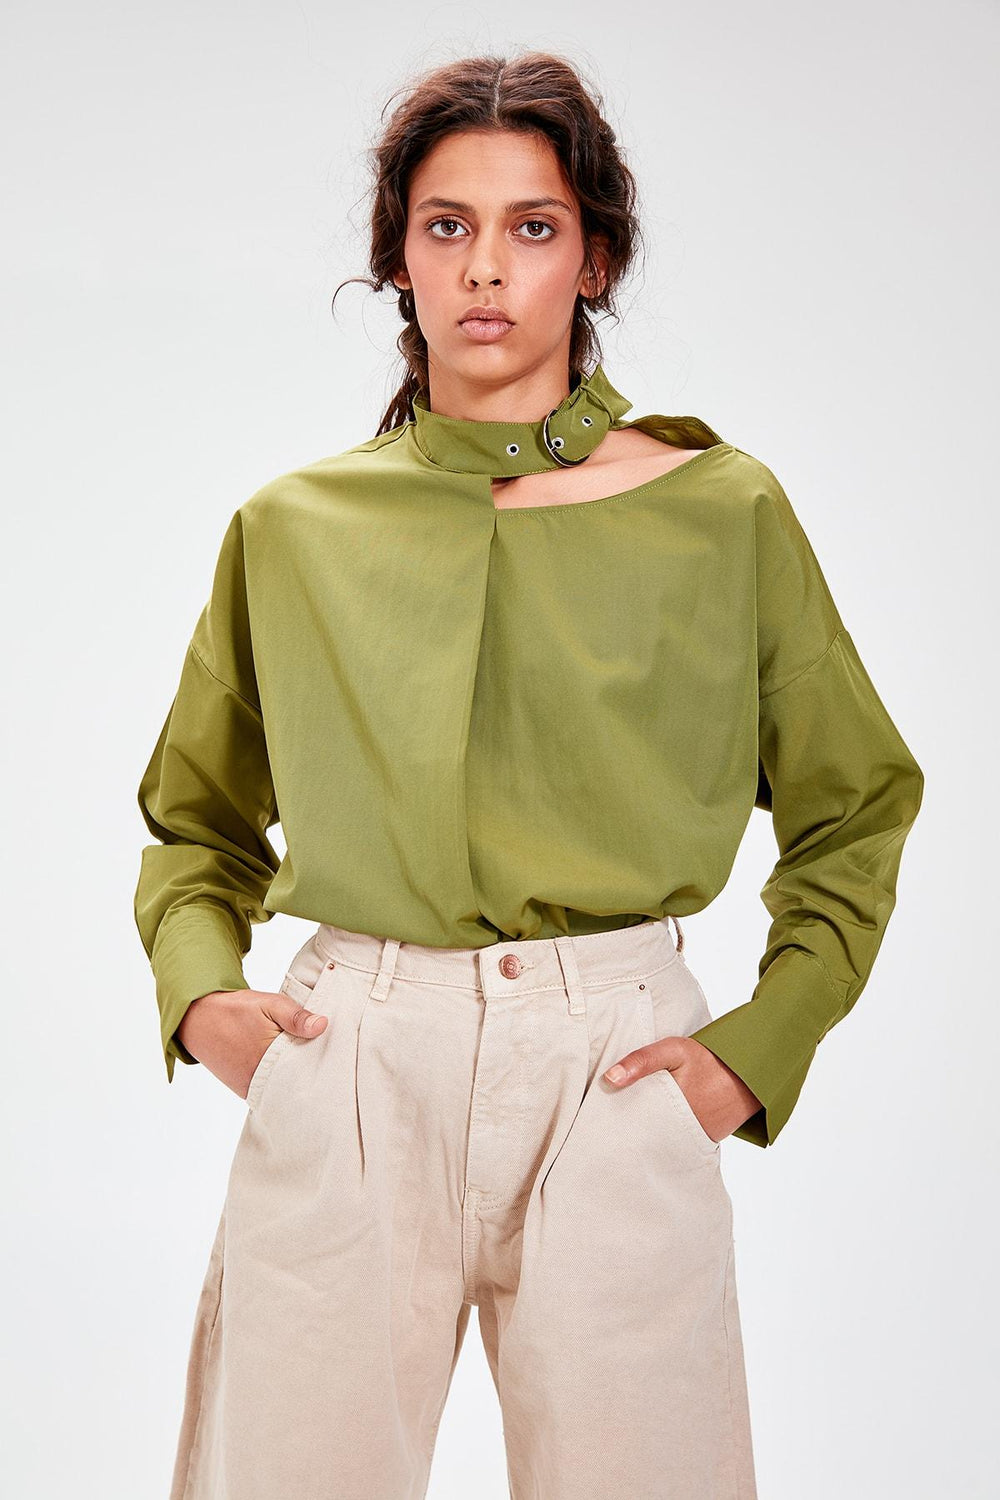 Khaki Collar Detailed Shirt - Top Maxy